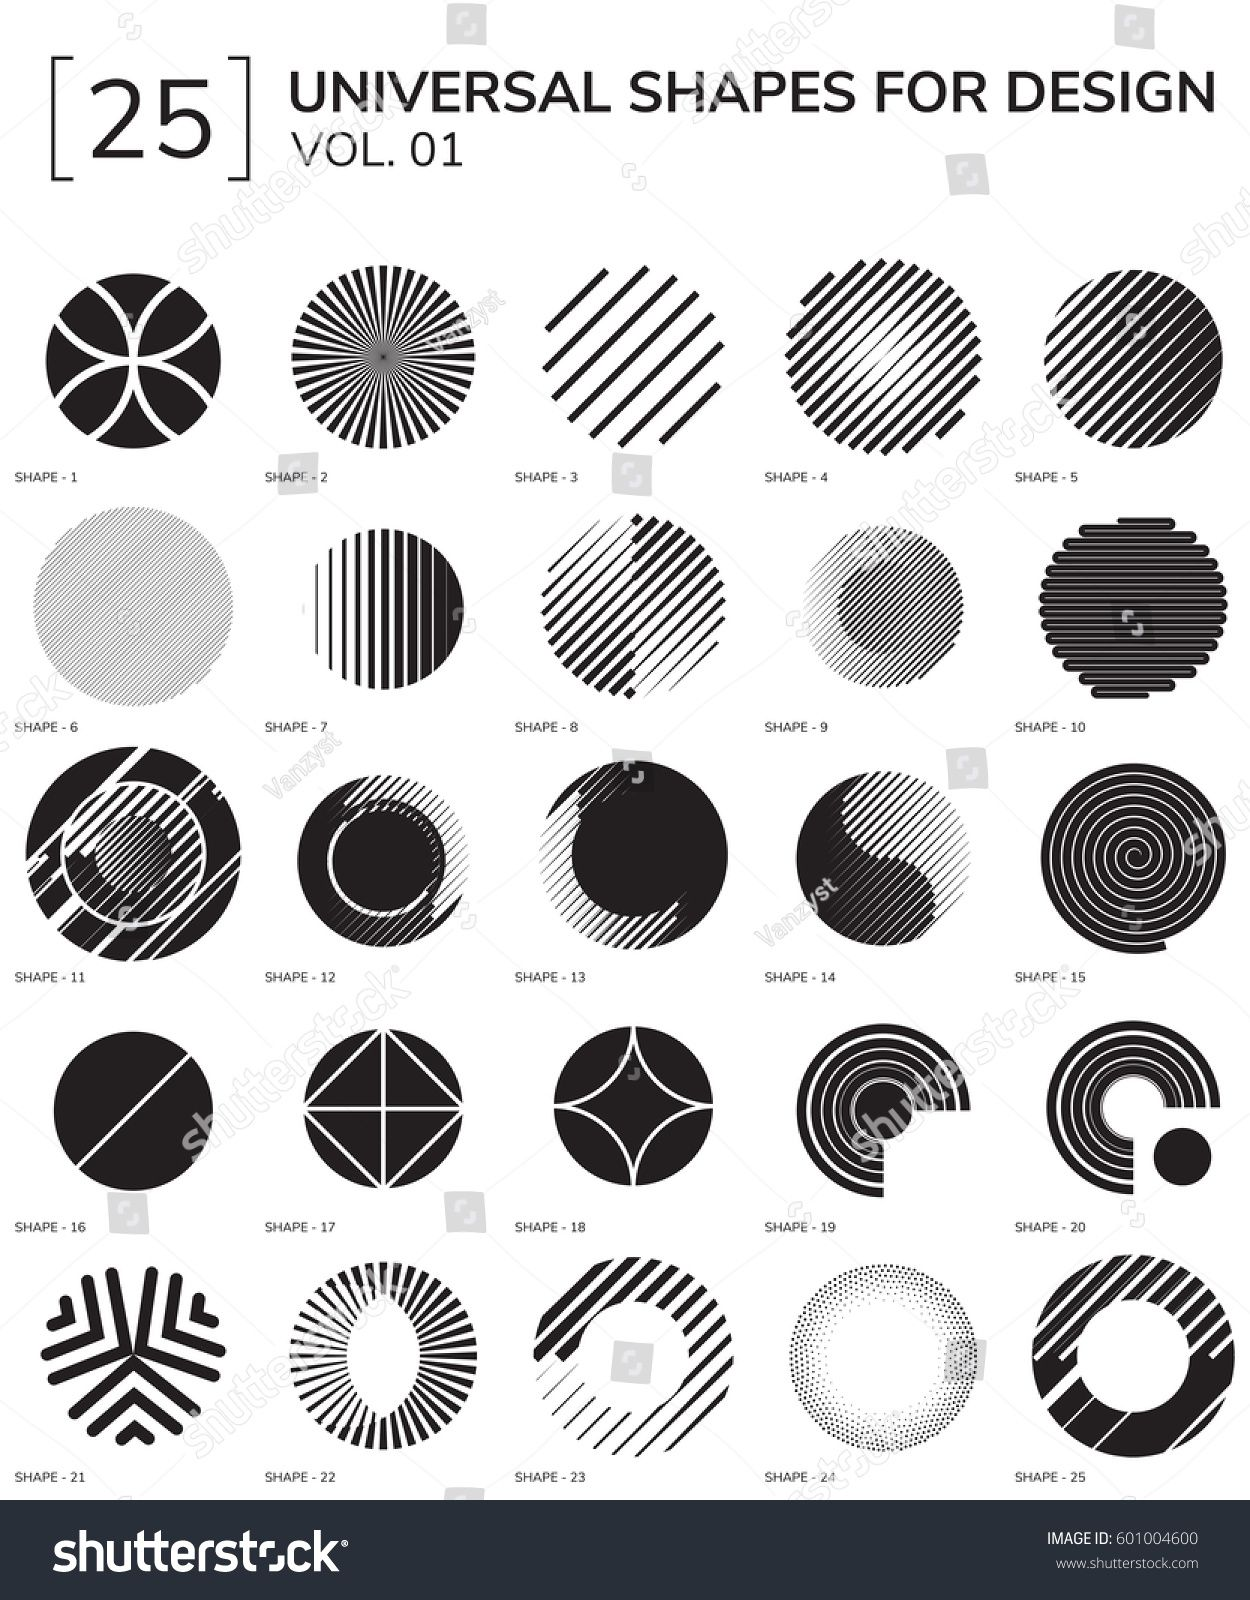 Related image | Sacred Geometry | Pinterest for Geometric Shapes Design Black And White  155sfw